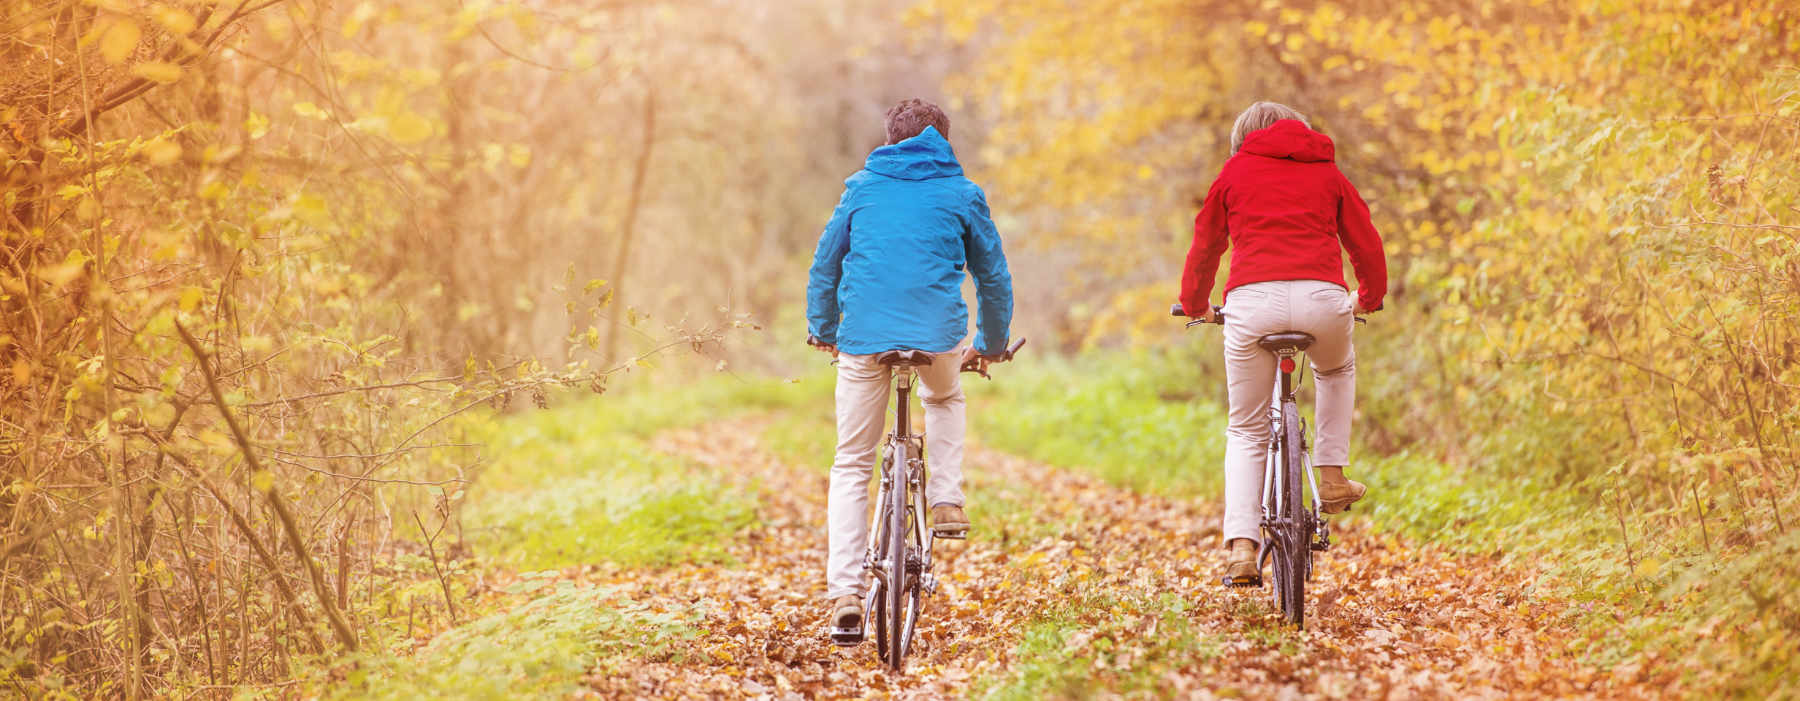 Image of seniors riding bikes in forest as concept for wise living over 50s exercise and fitness guides - from yoga for over 50 to how to find a personal trainer